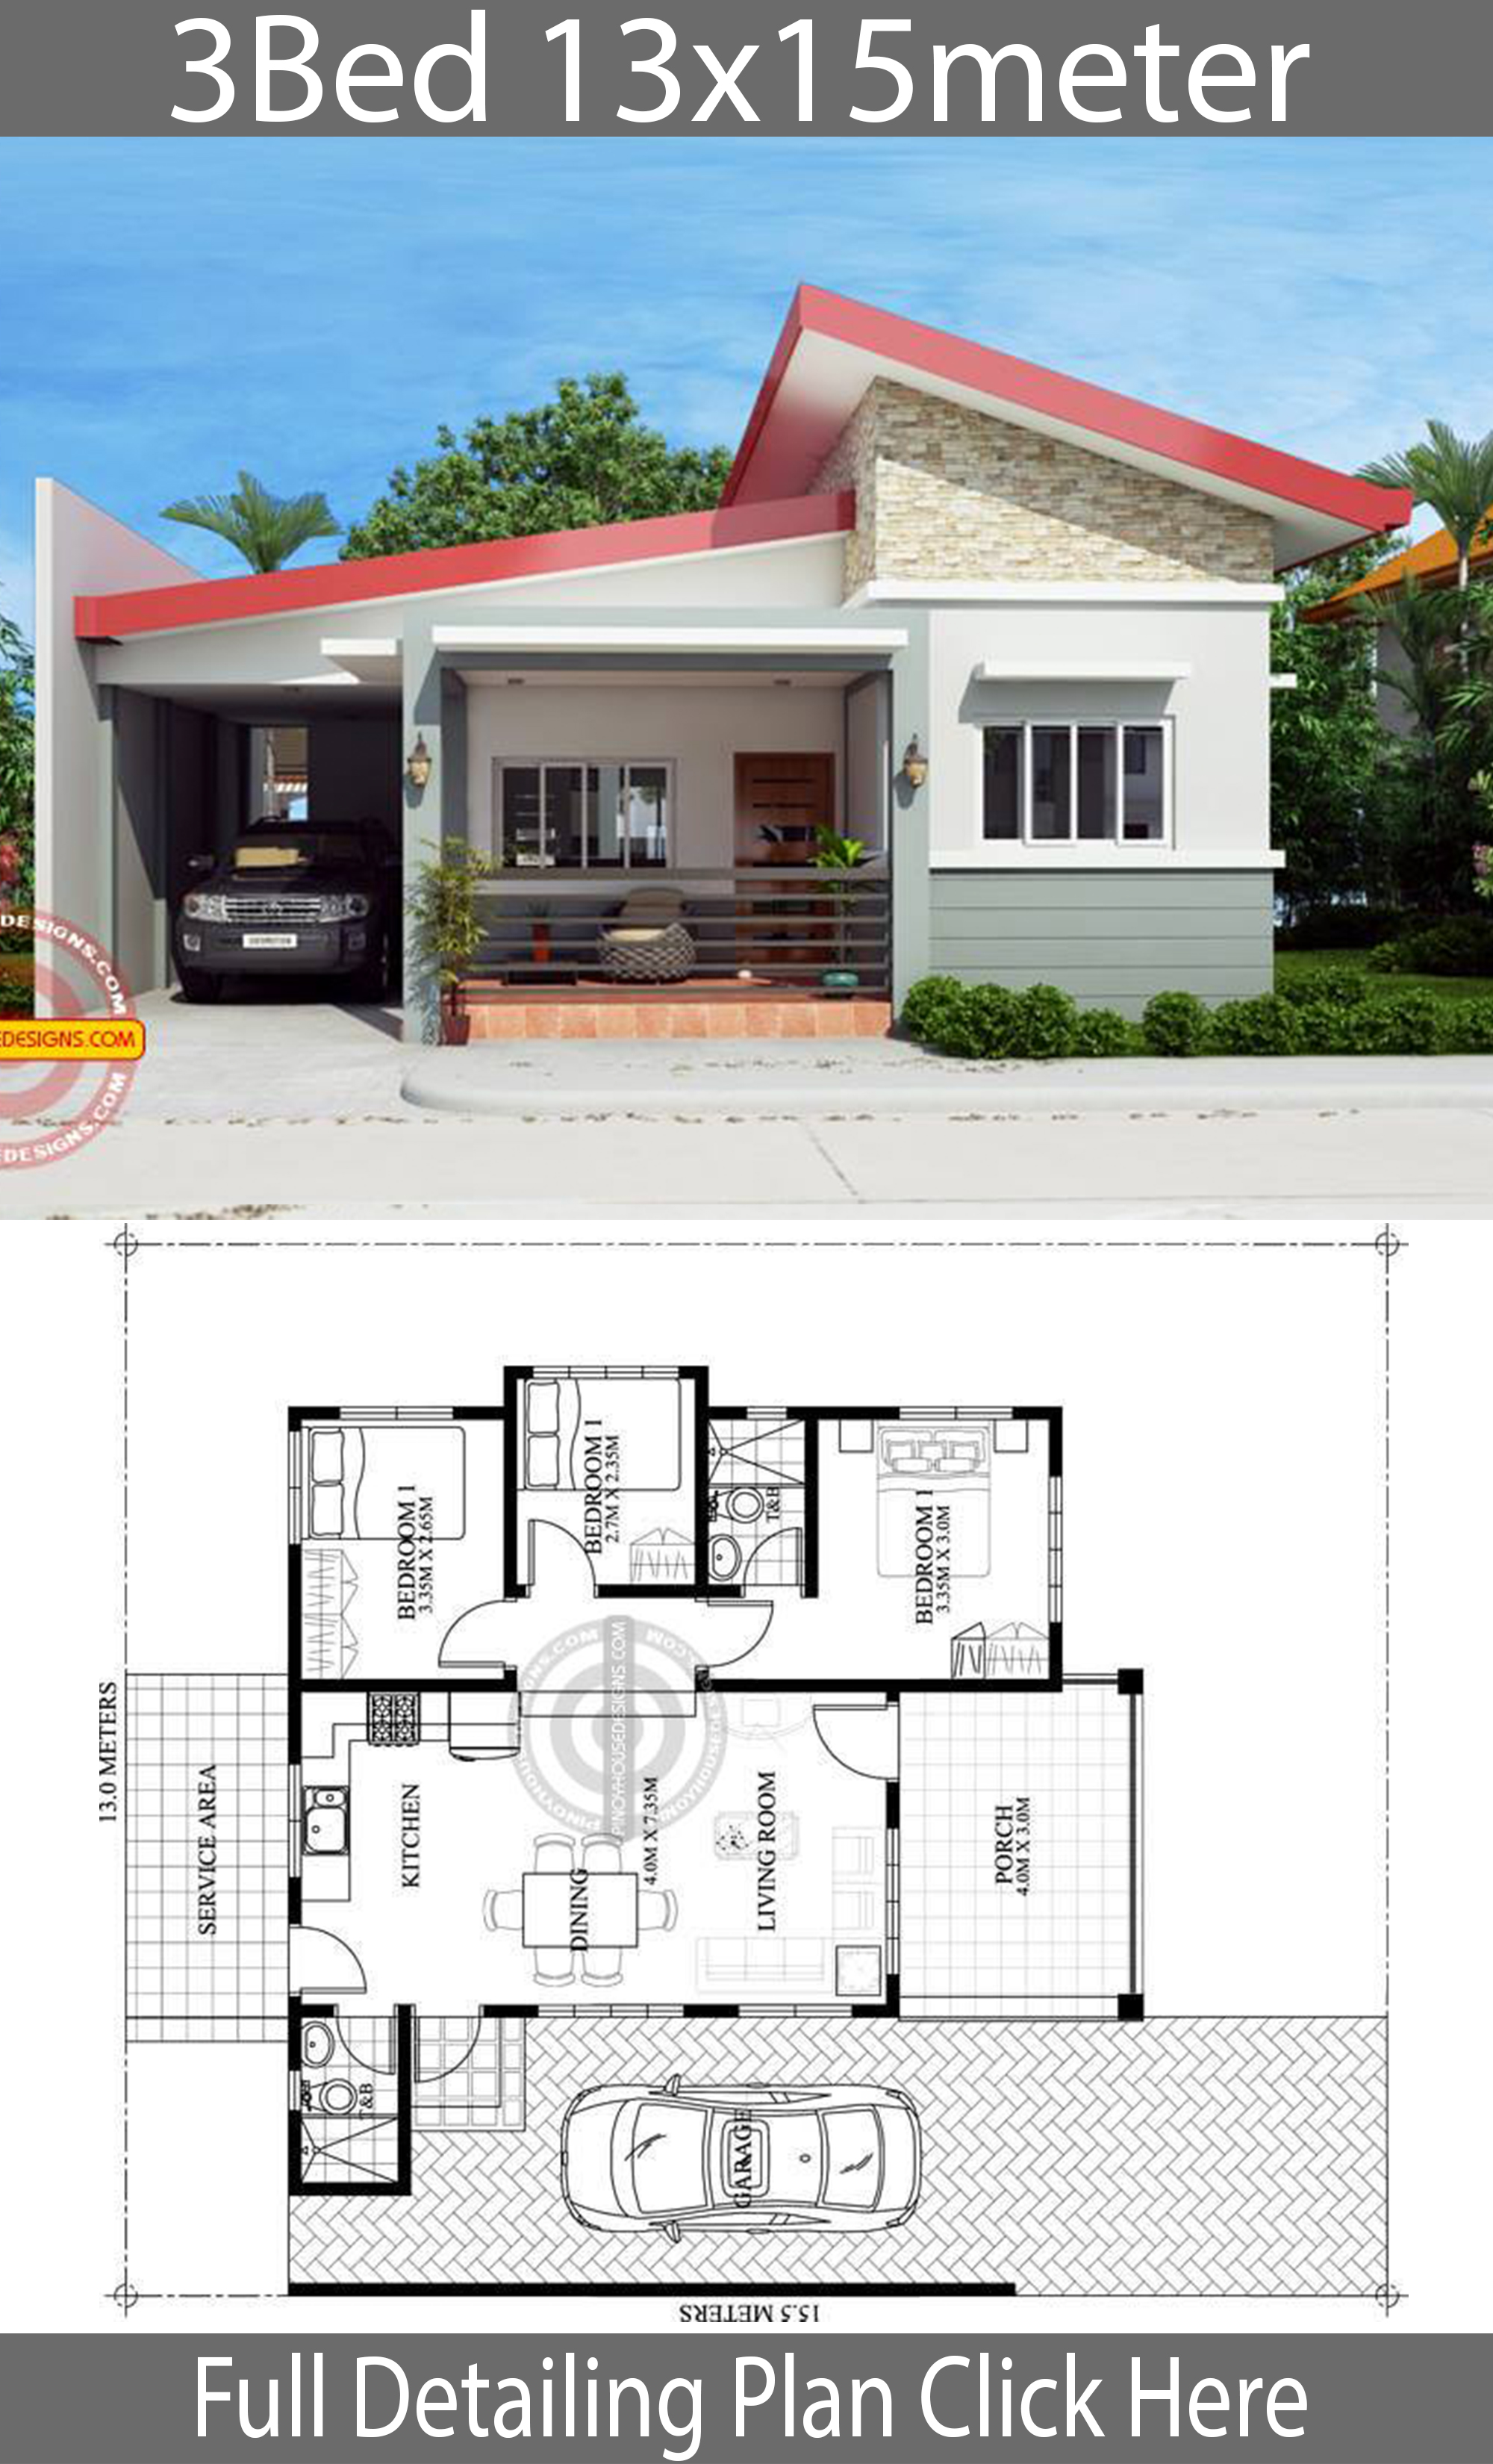 Home design plan 13x15m with 3 Bedrooms - House Plans 3D